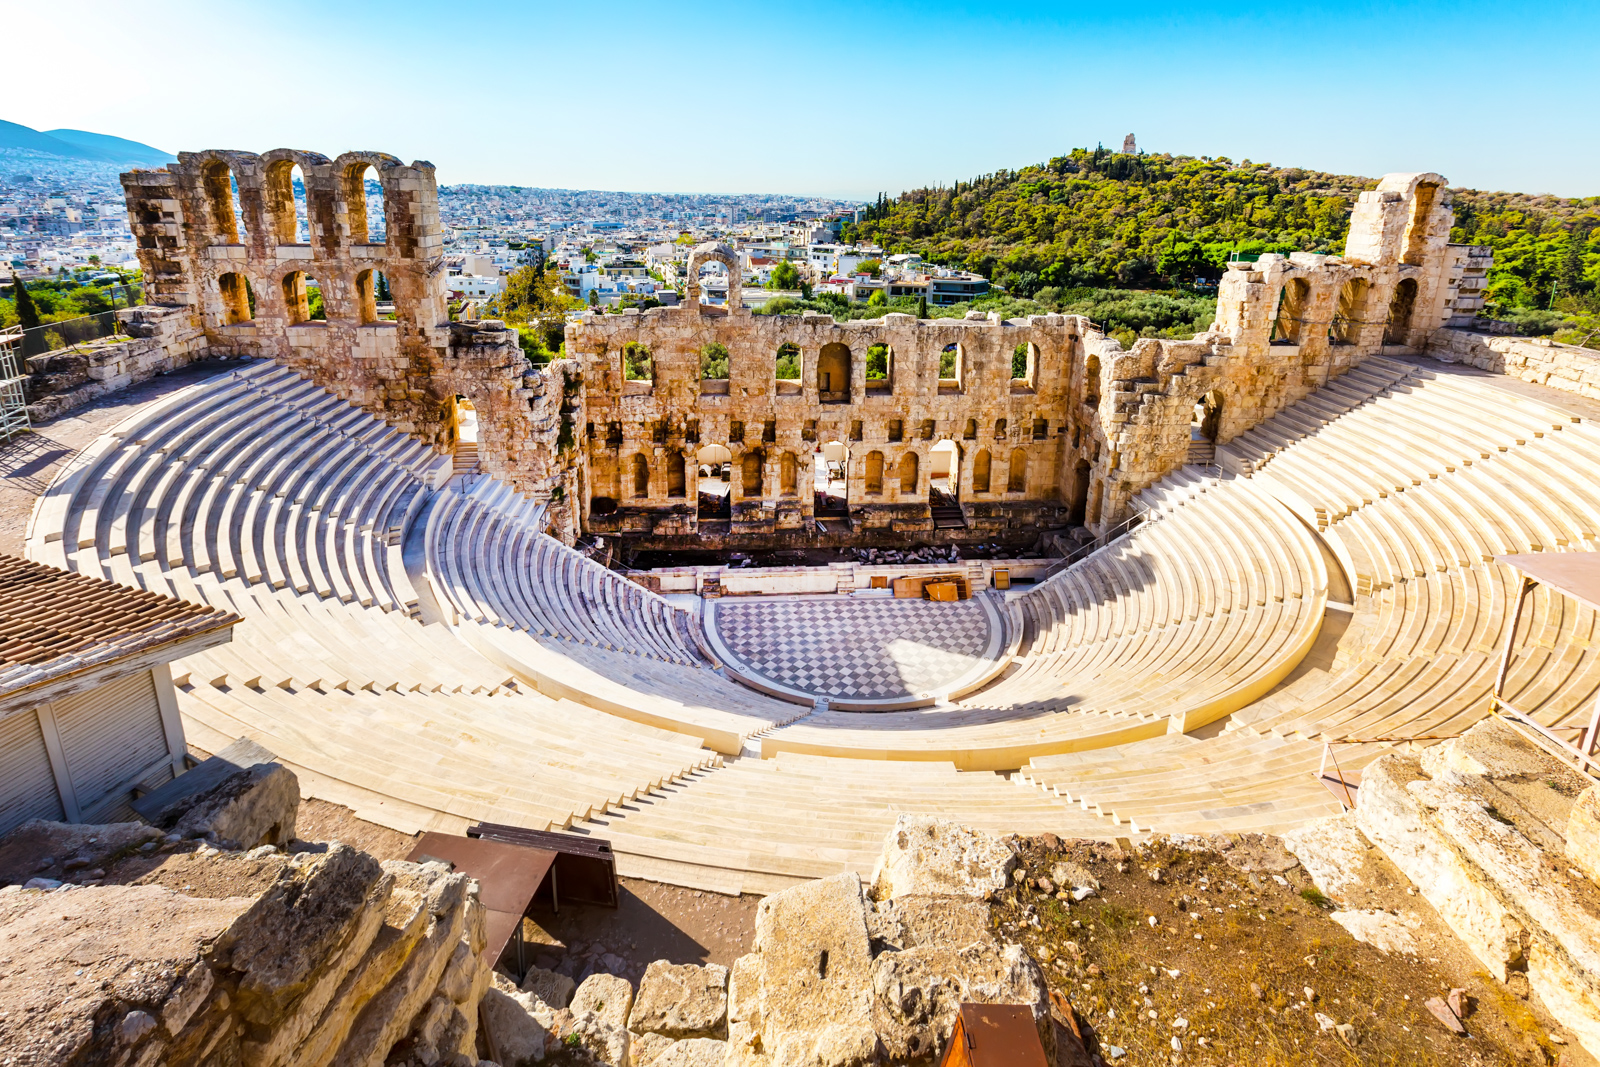 Things to do in Athens landmarks like the Ancient Amphitheater of Acropolis of Athens, landmark of Greece